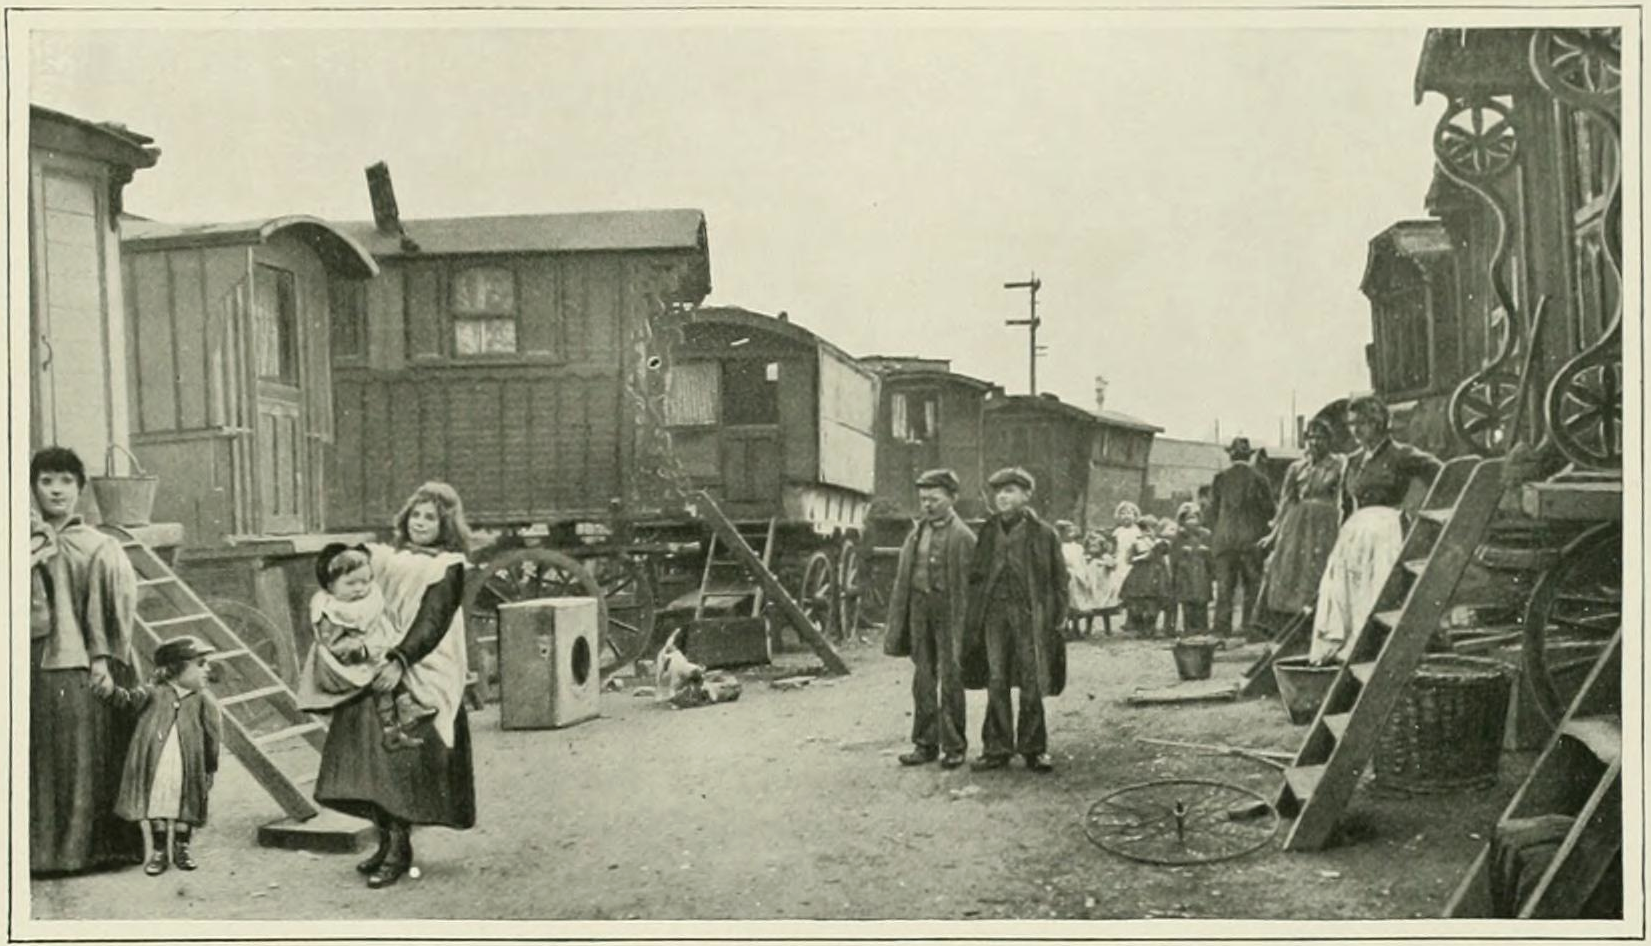 Travellers' encampment in Battersea.